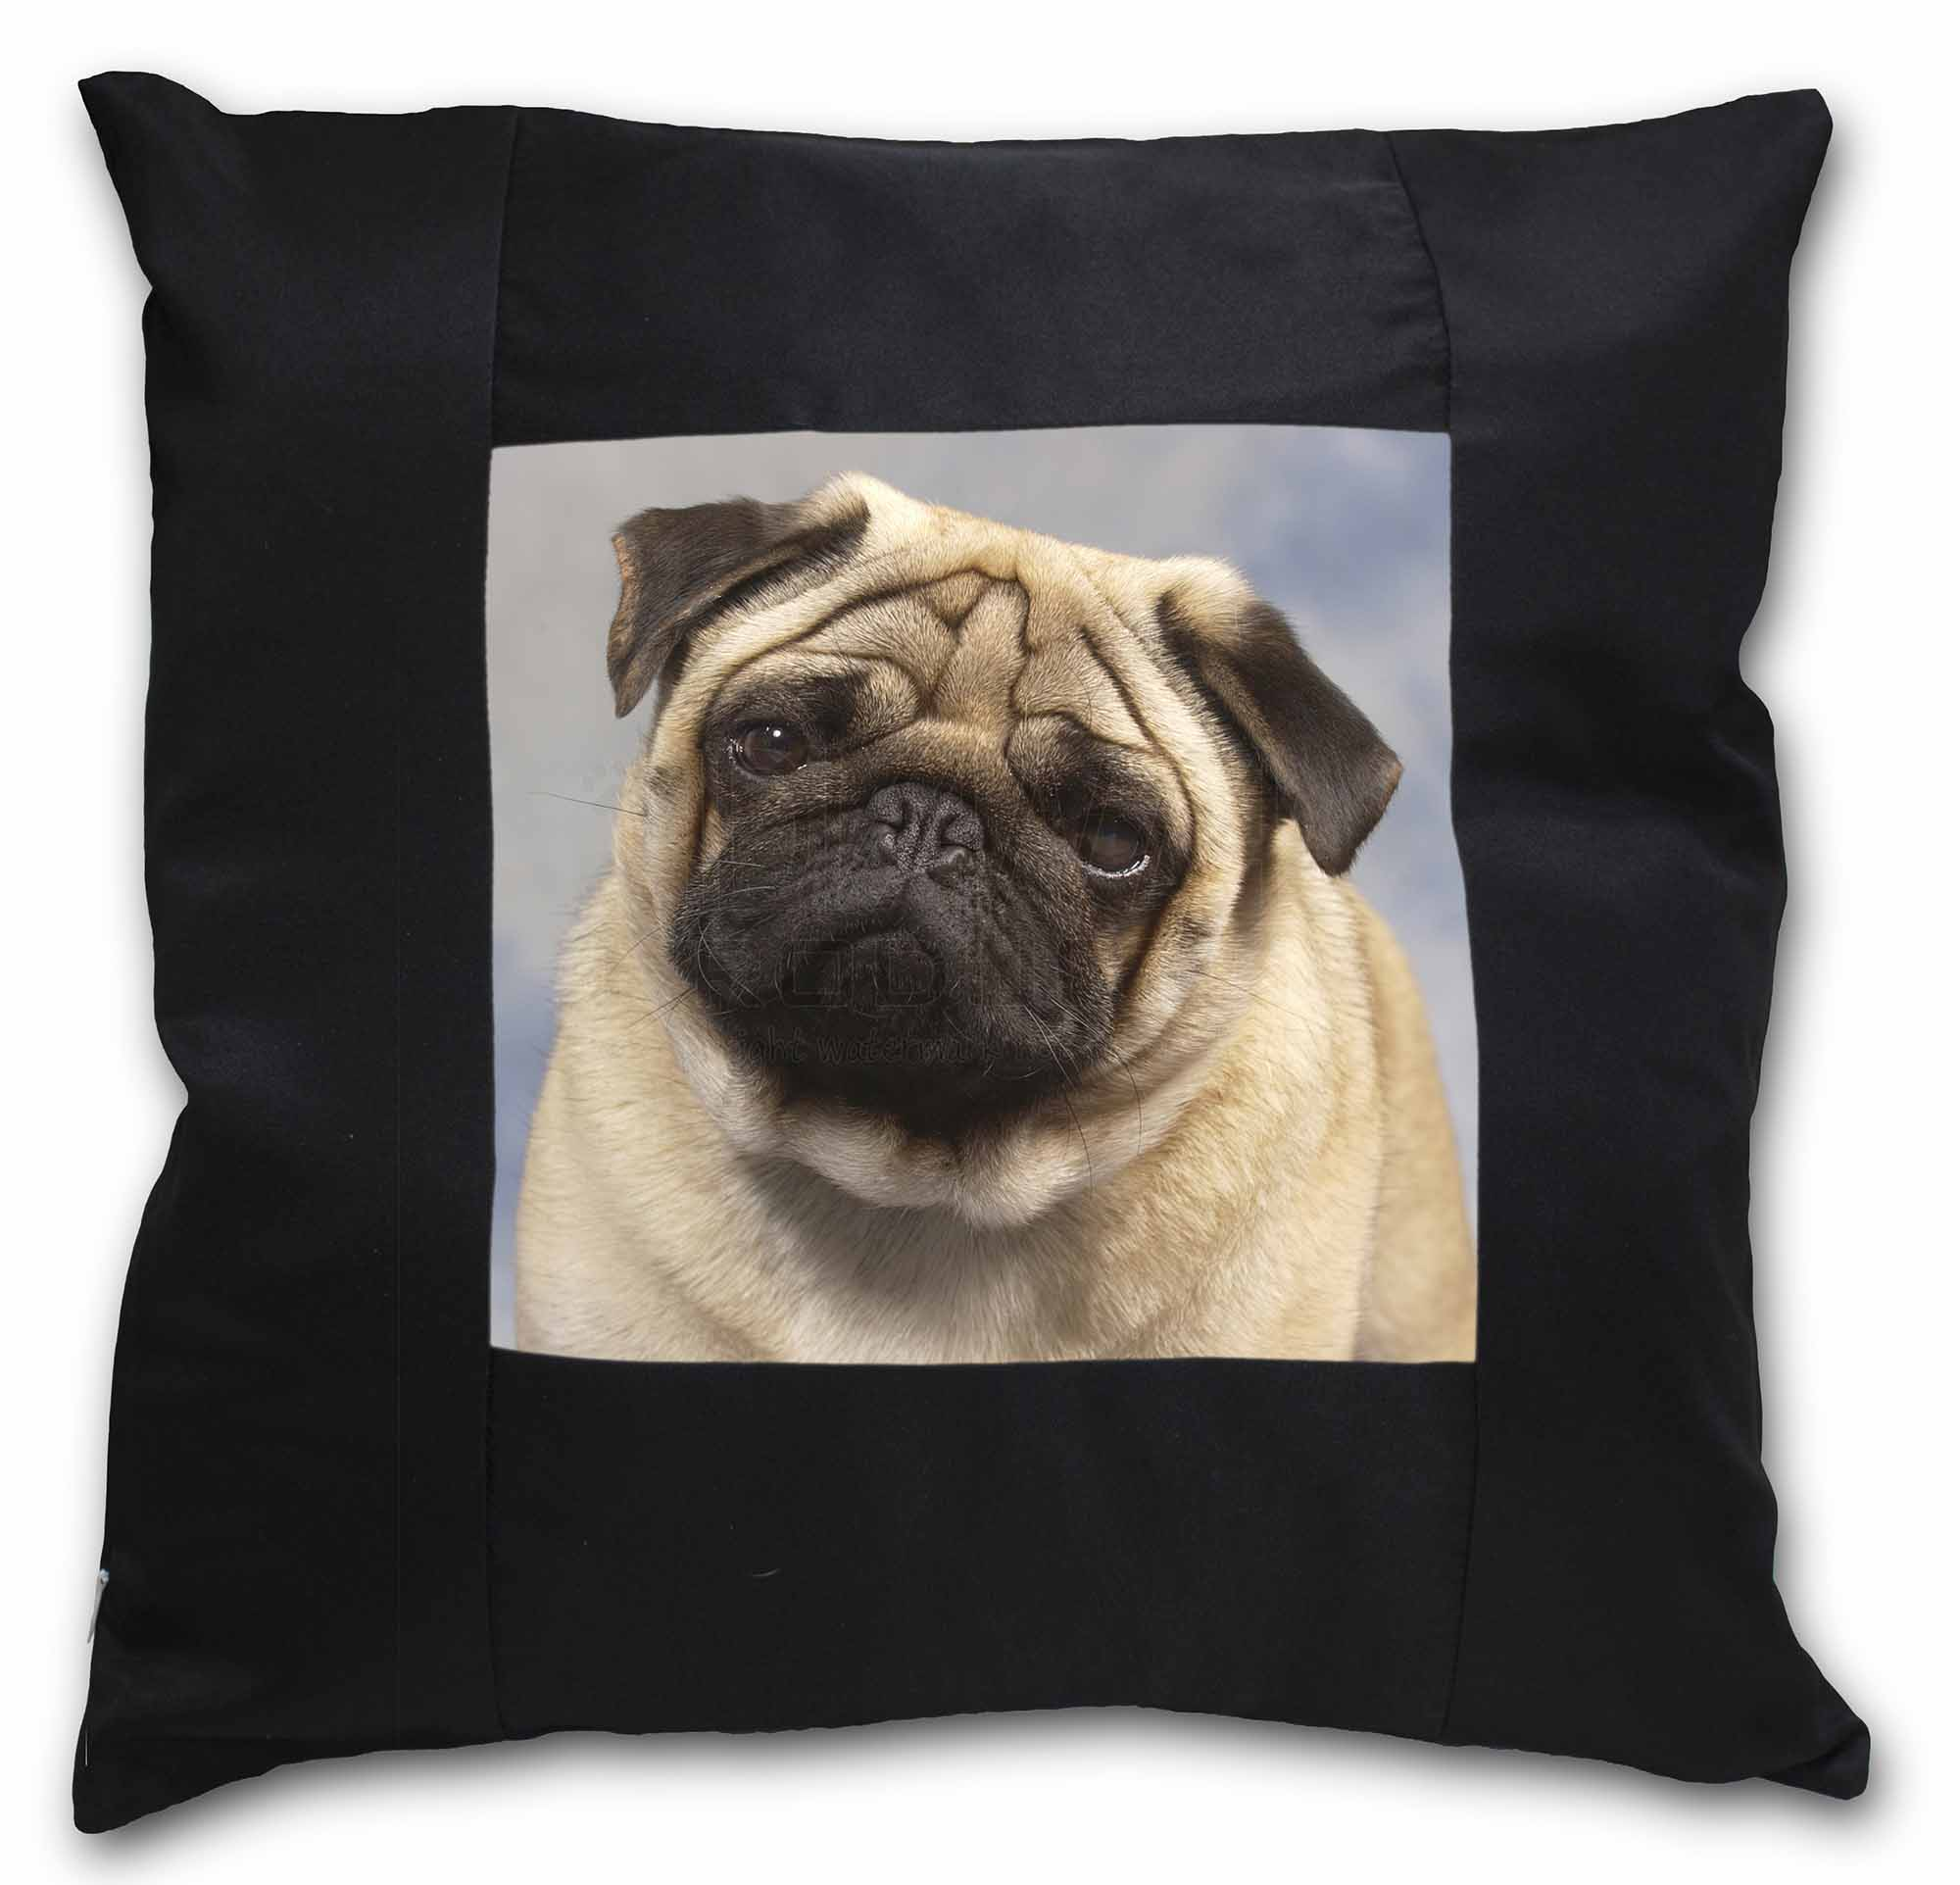 Fawn Pug Dog Black Border Satin Feel Cushion Cover With Pillow